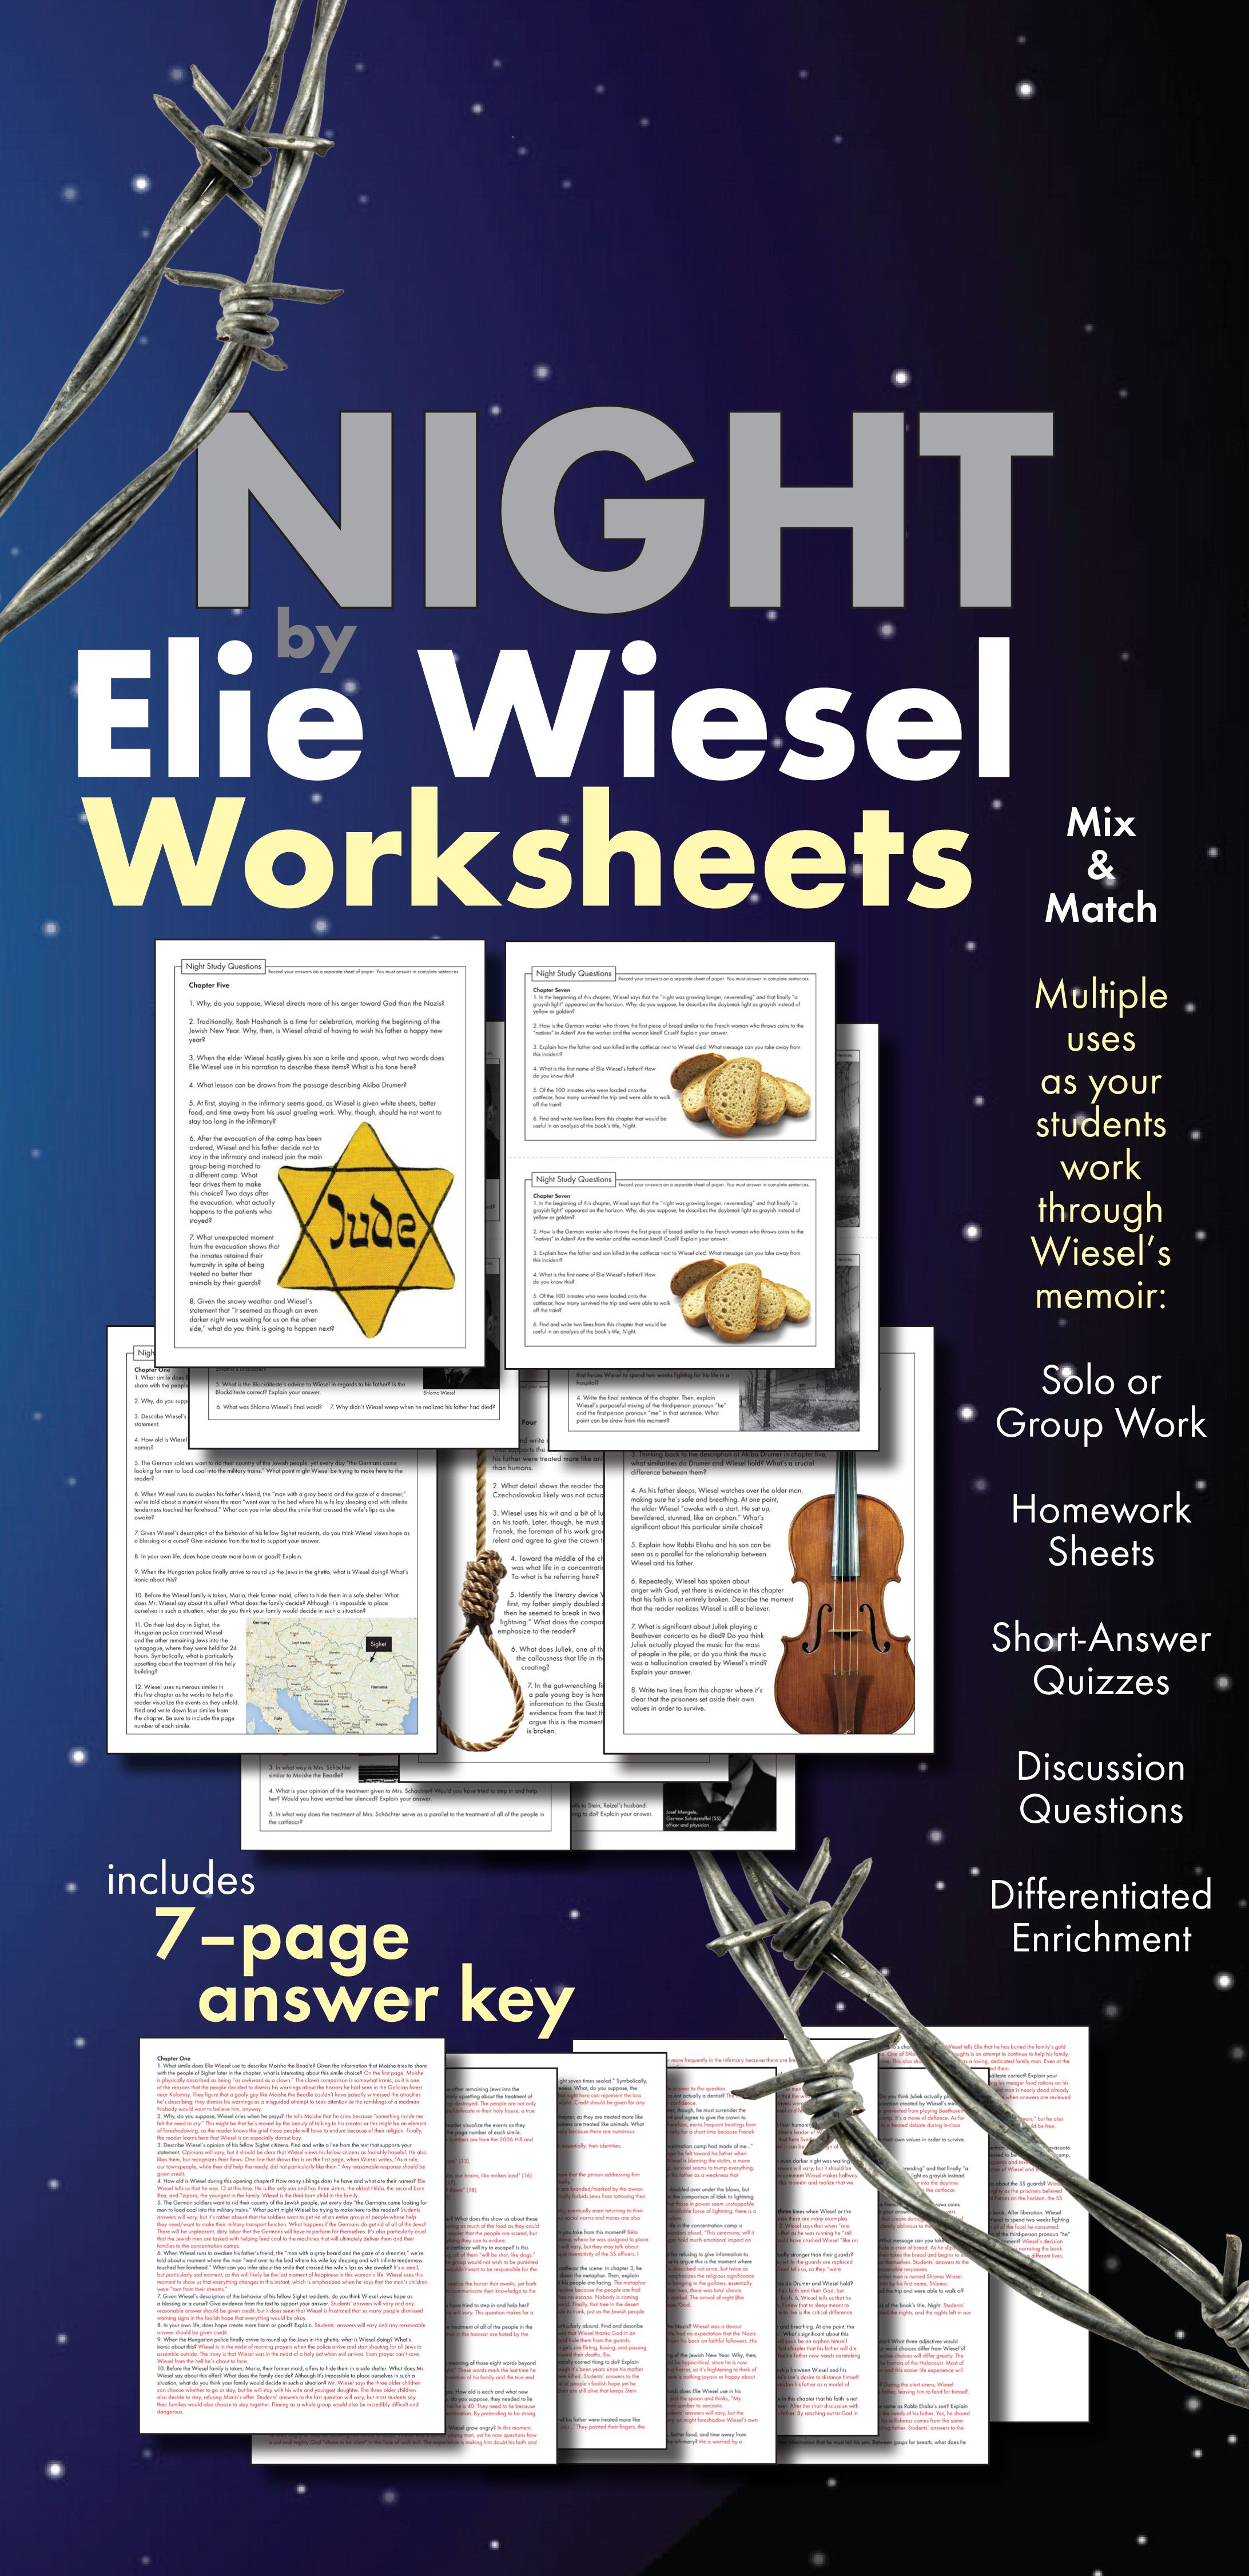 Symbols In Night By Elie Wiesel Symbols 03 06